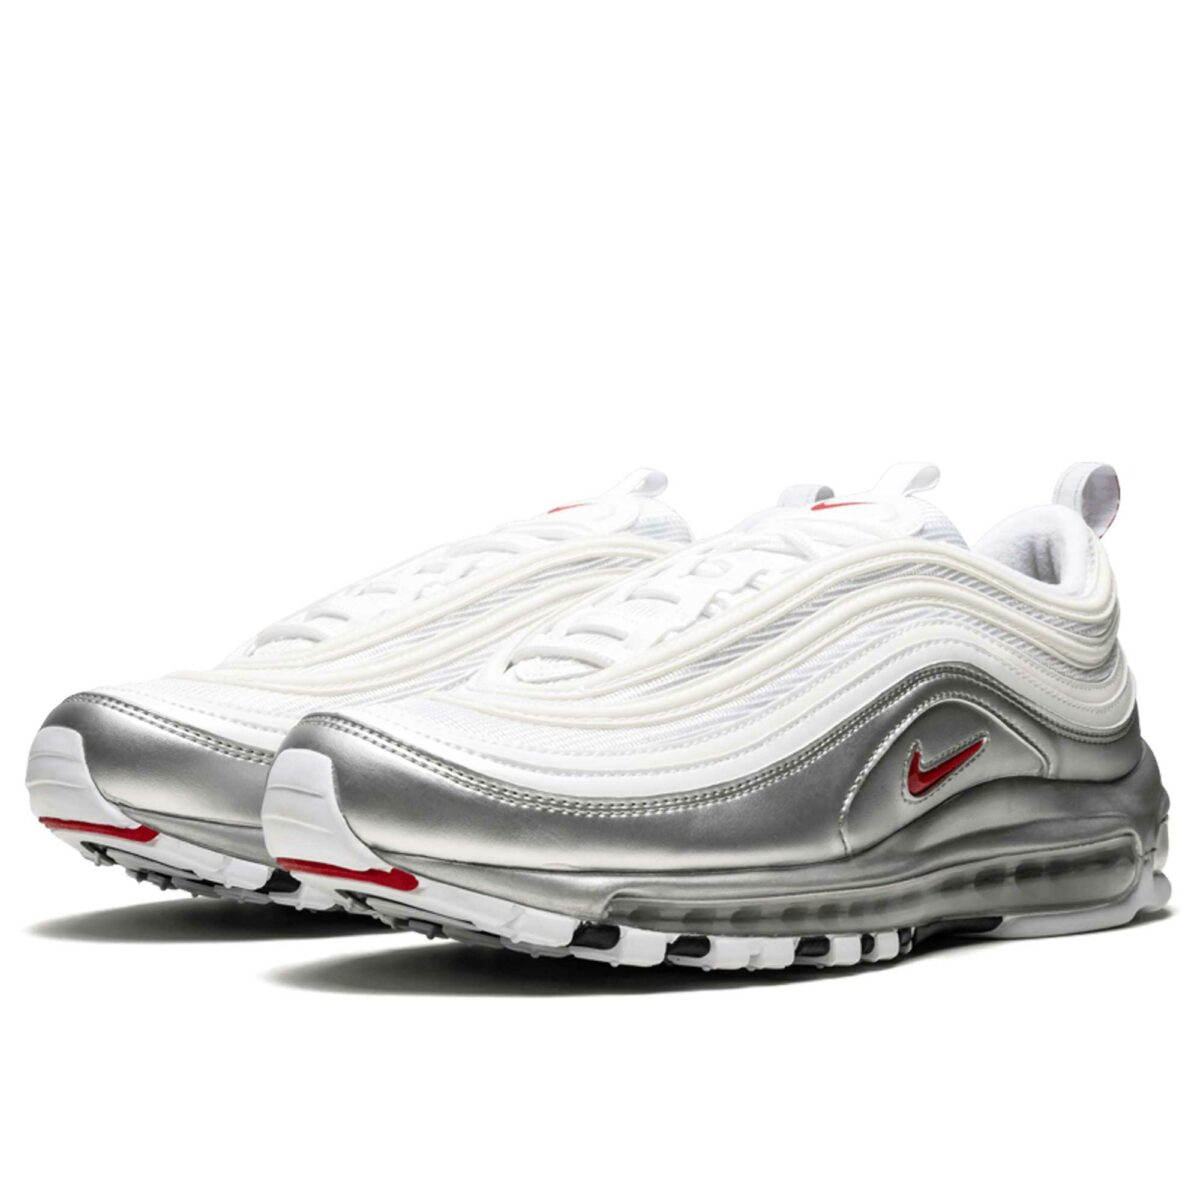 nike air max 97 QS white metalic silver AT5458_100 купить